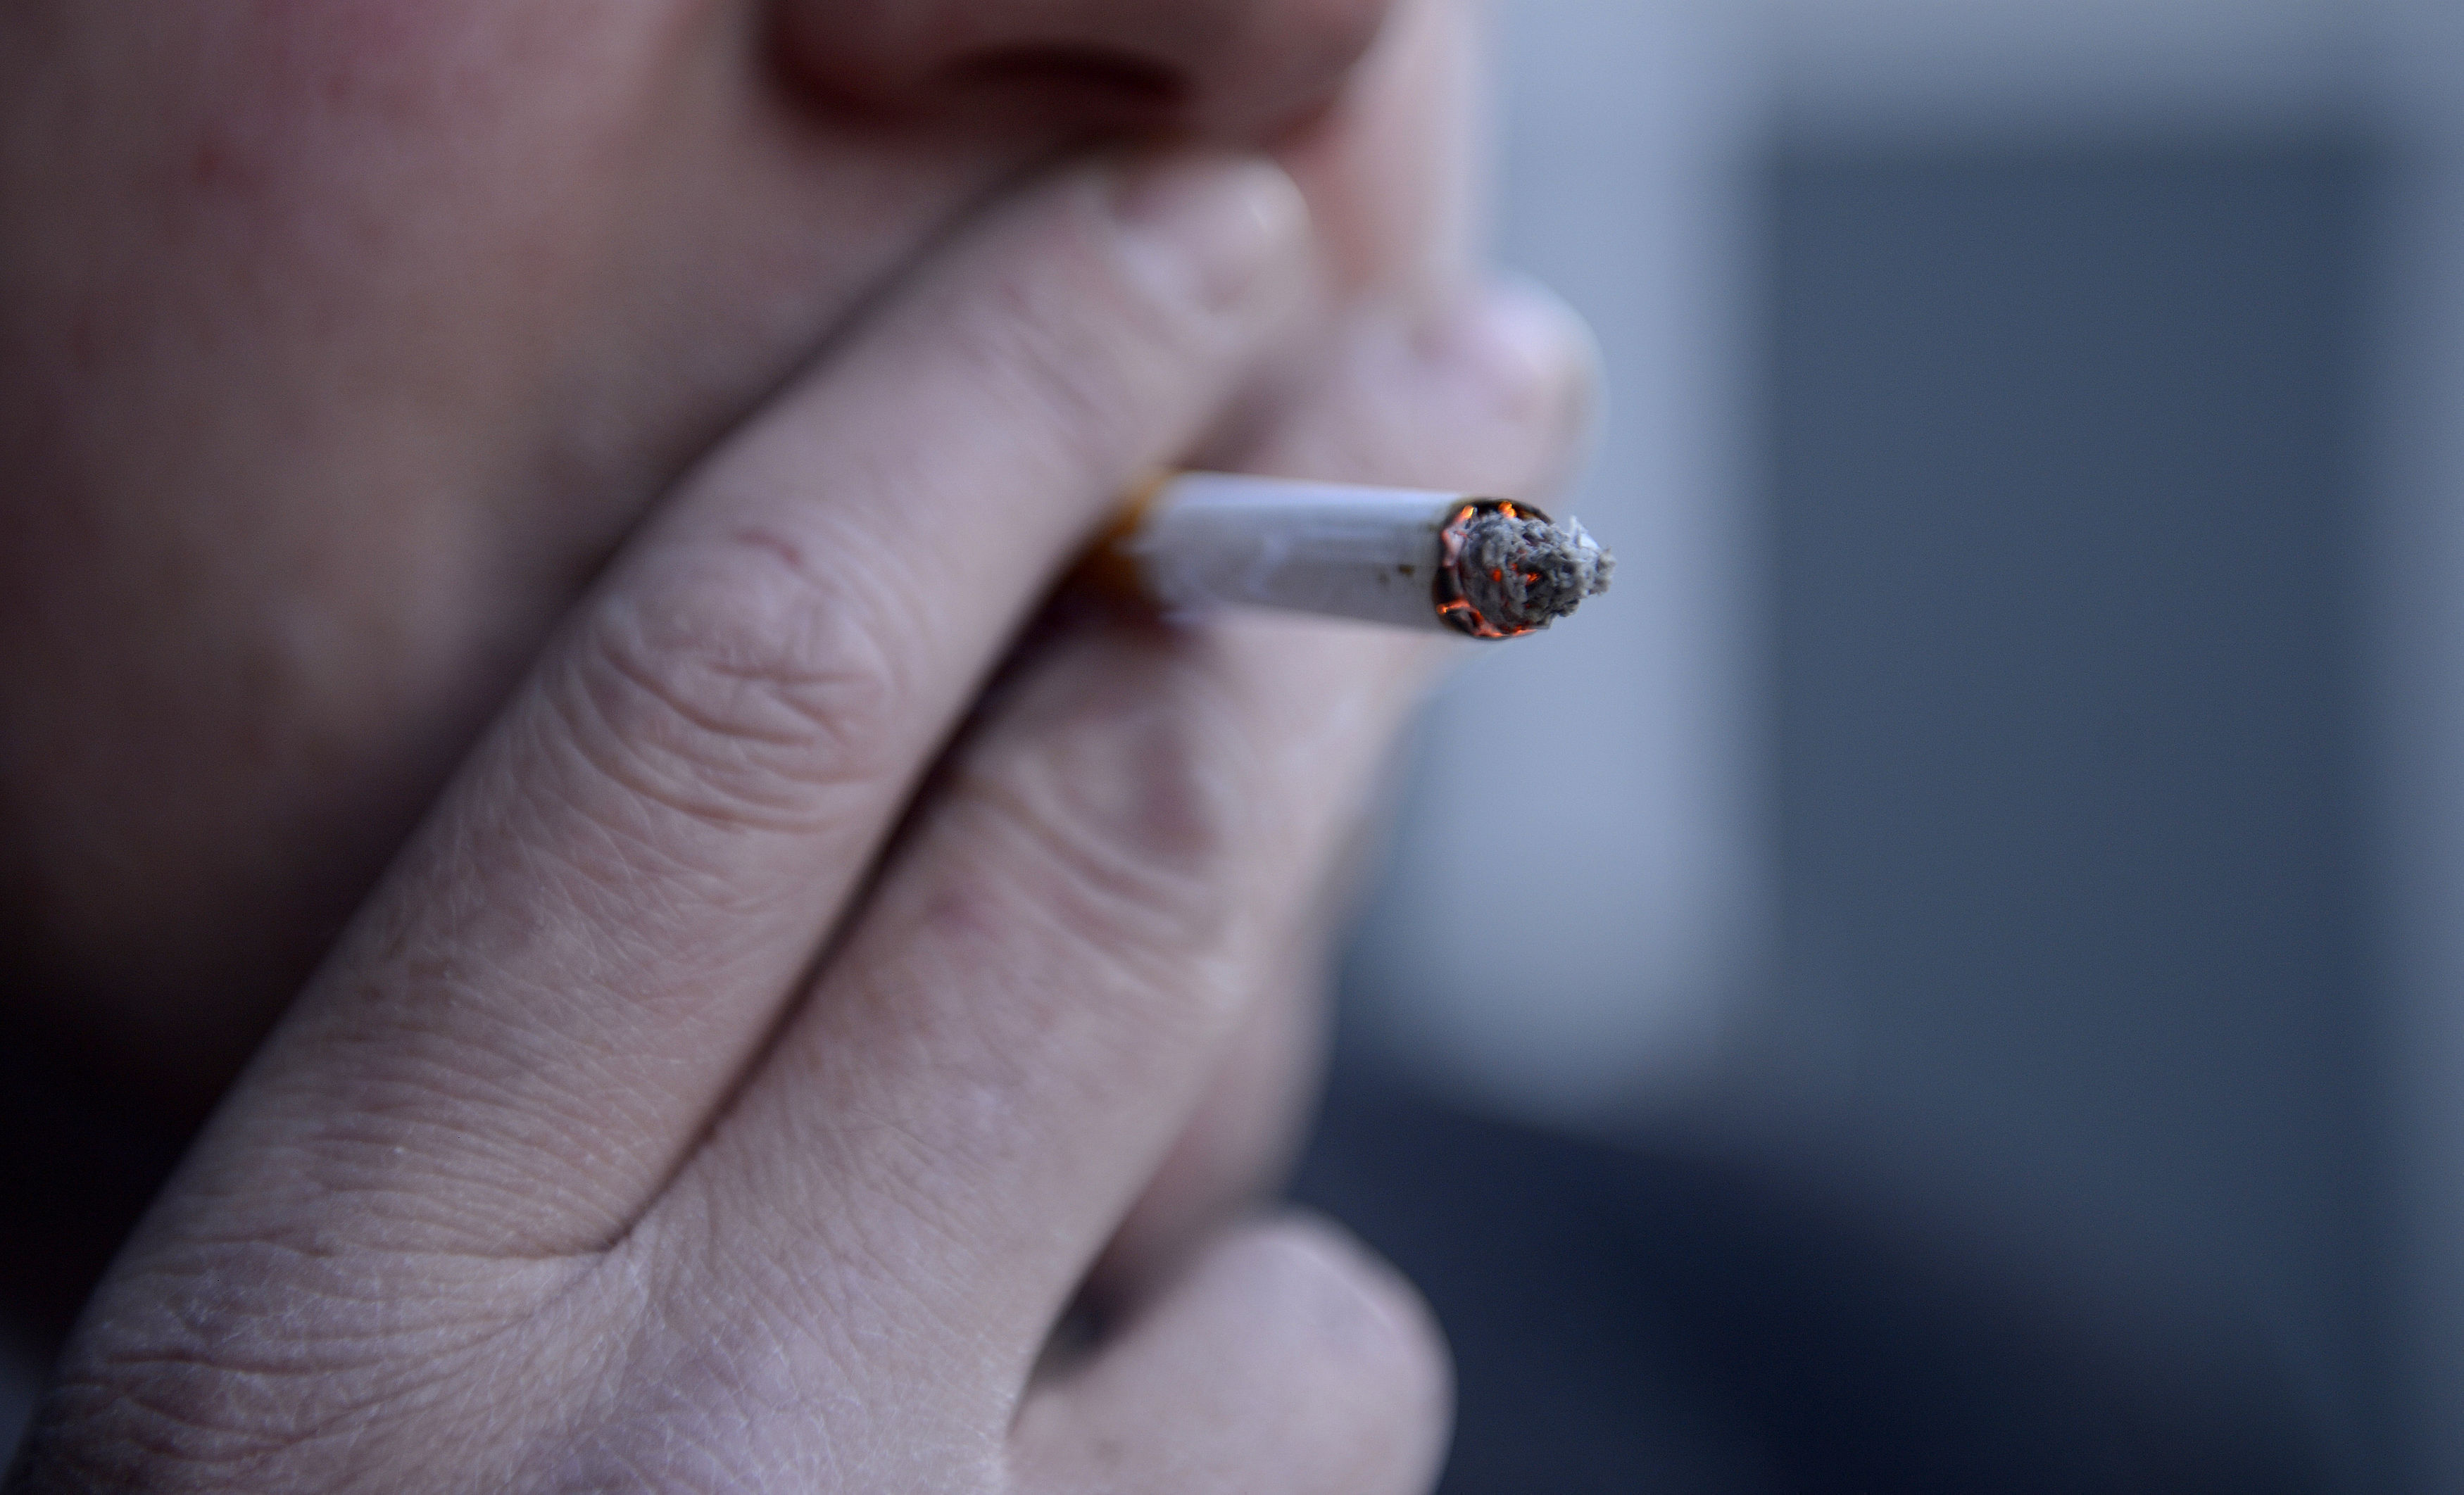 Scientists say smoking contain toxins which can affect the cells in the penis. Credit: PA